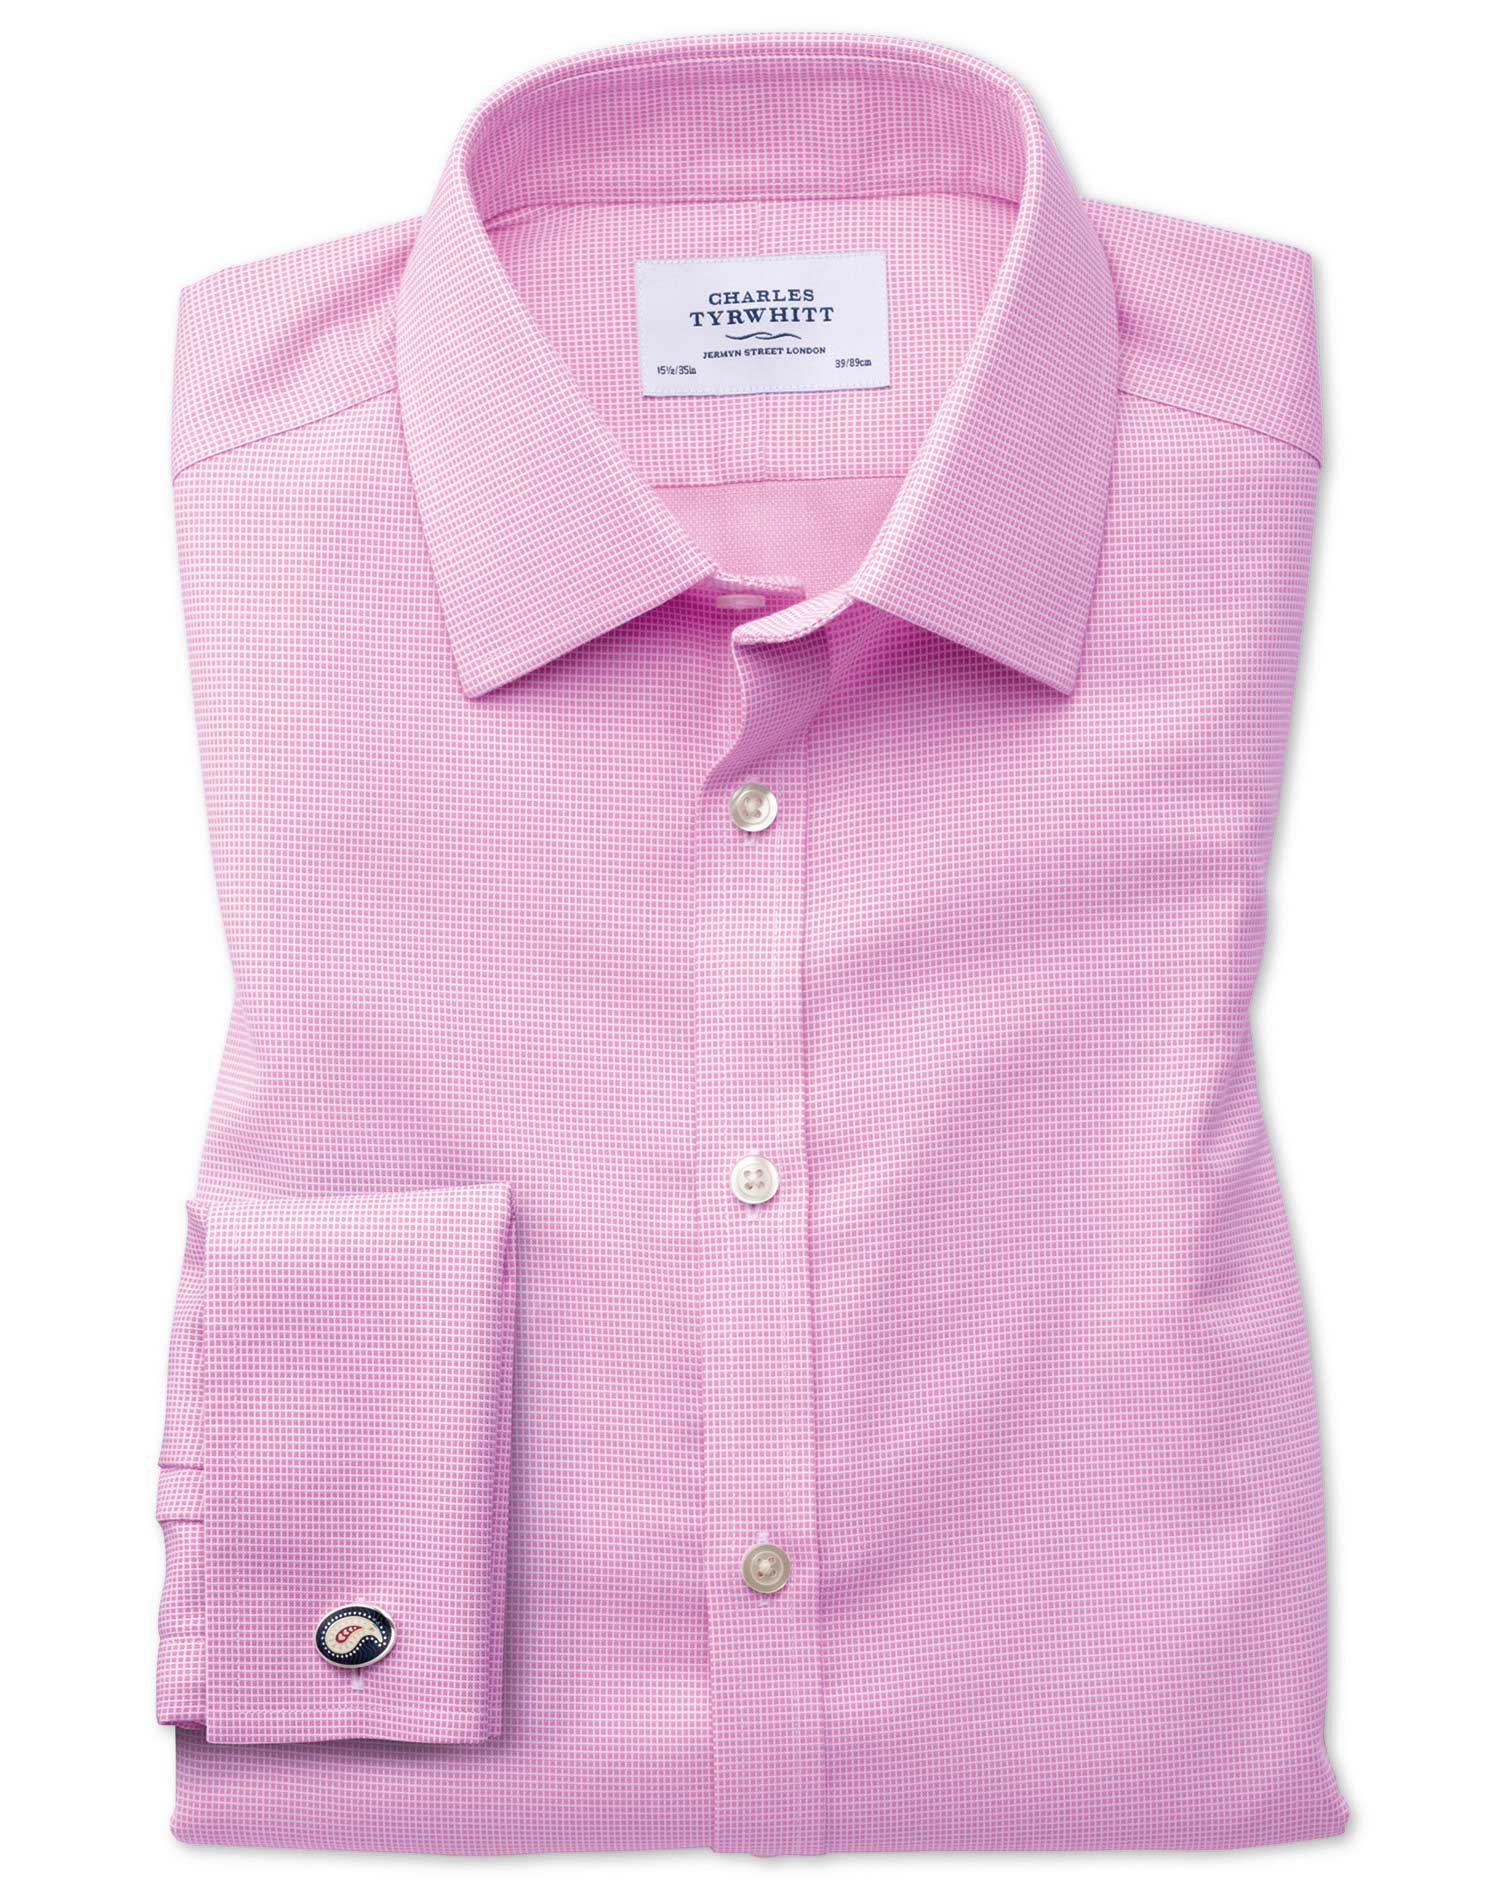 Slim Fit Non-Iron Square Weave Pink Cotton Formal Shirt Single Cuff Size 17.5/34 by Charles Tyrwhitt